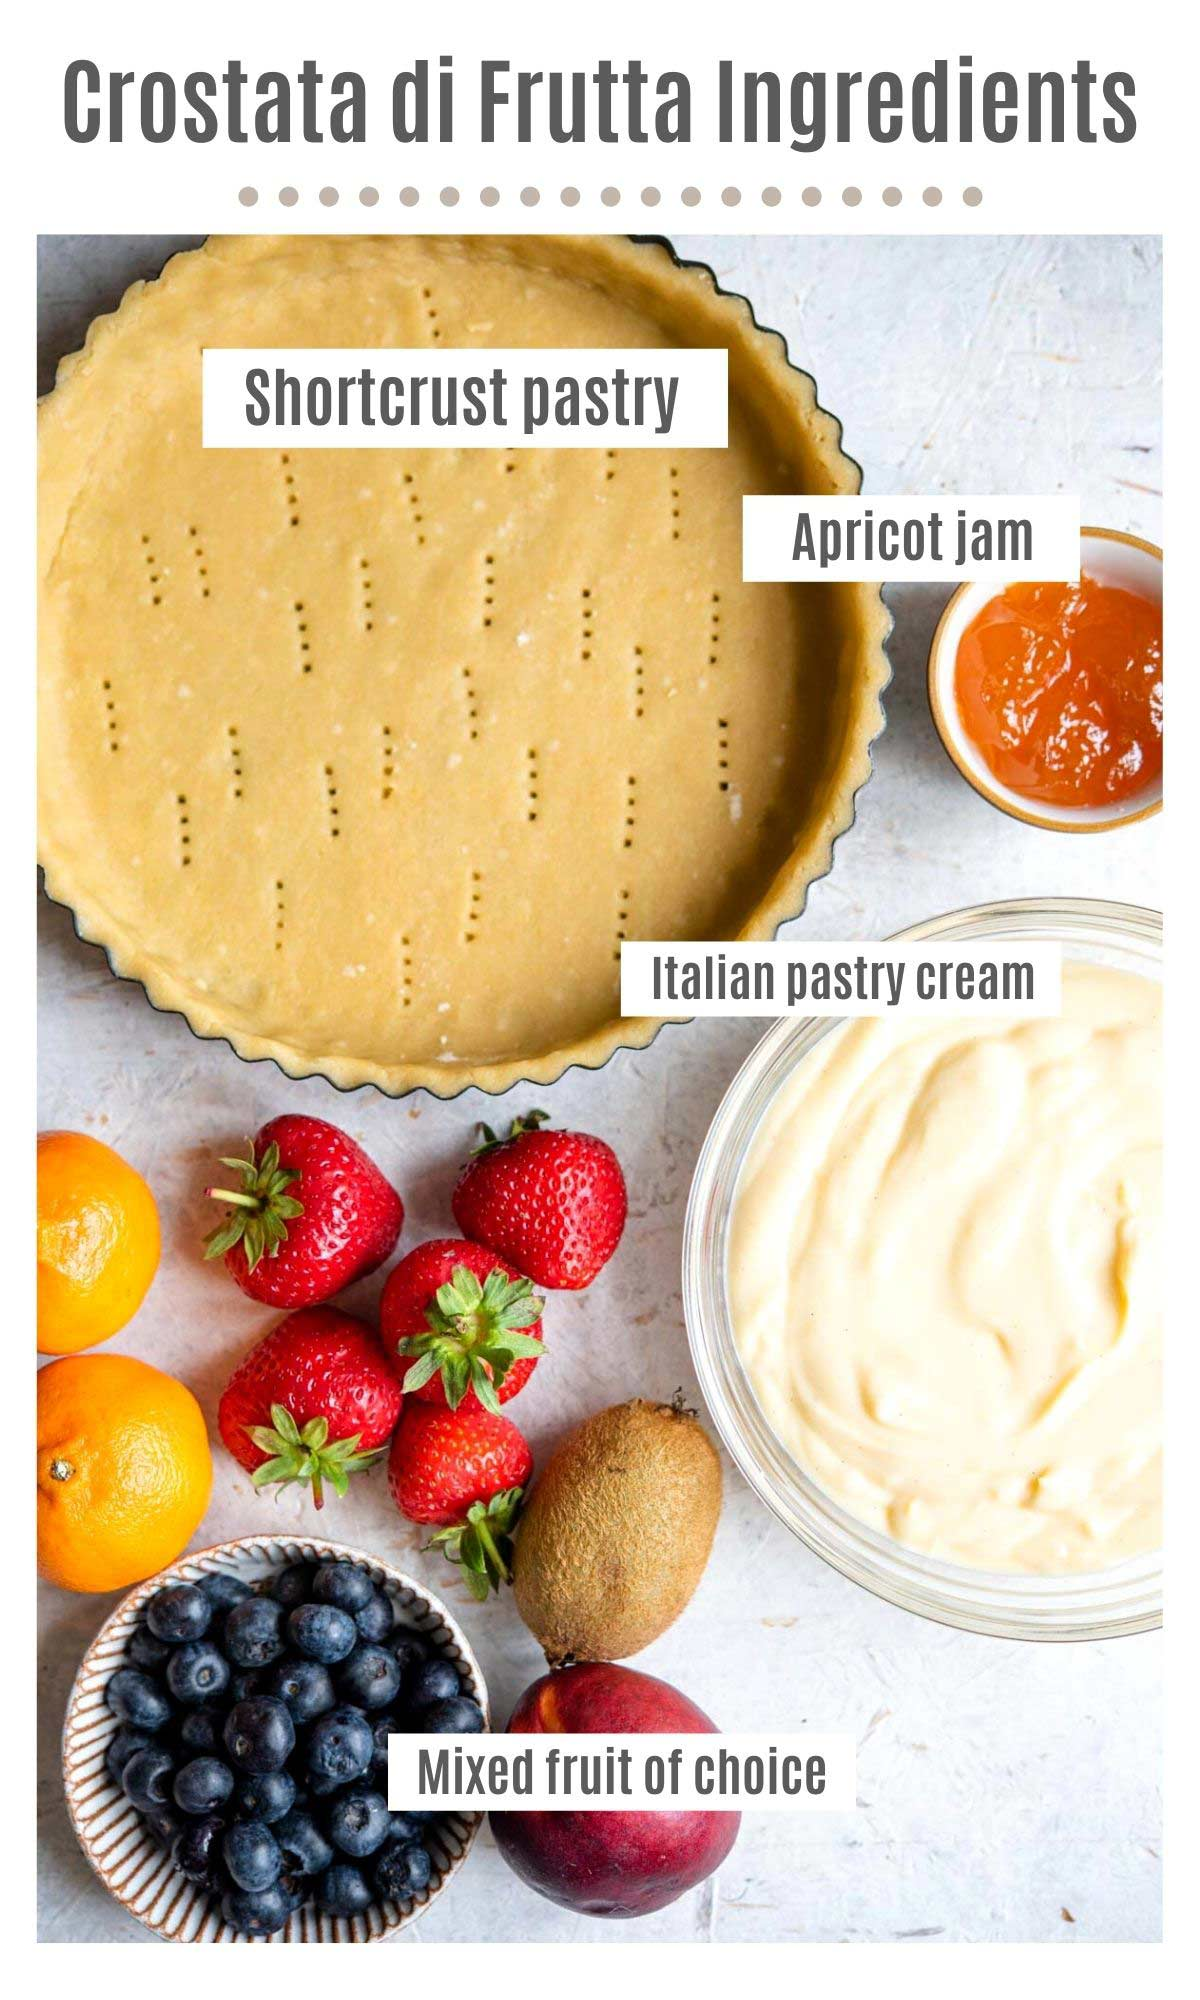 An overhead shot of the ingredients you need to make a crostata di frutta (Italian fruit tart)